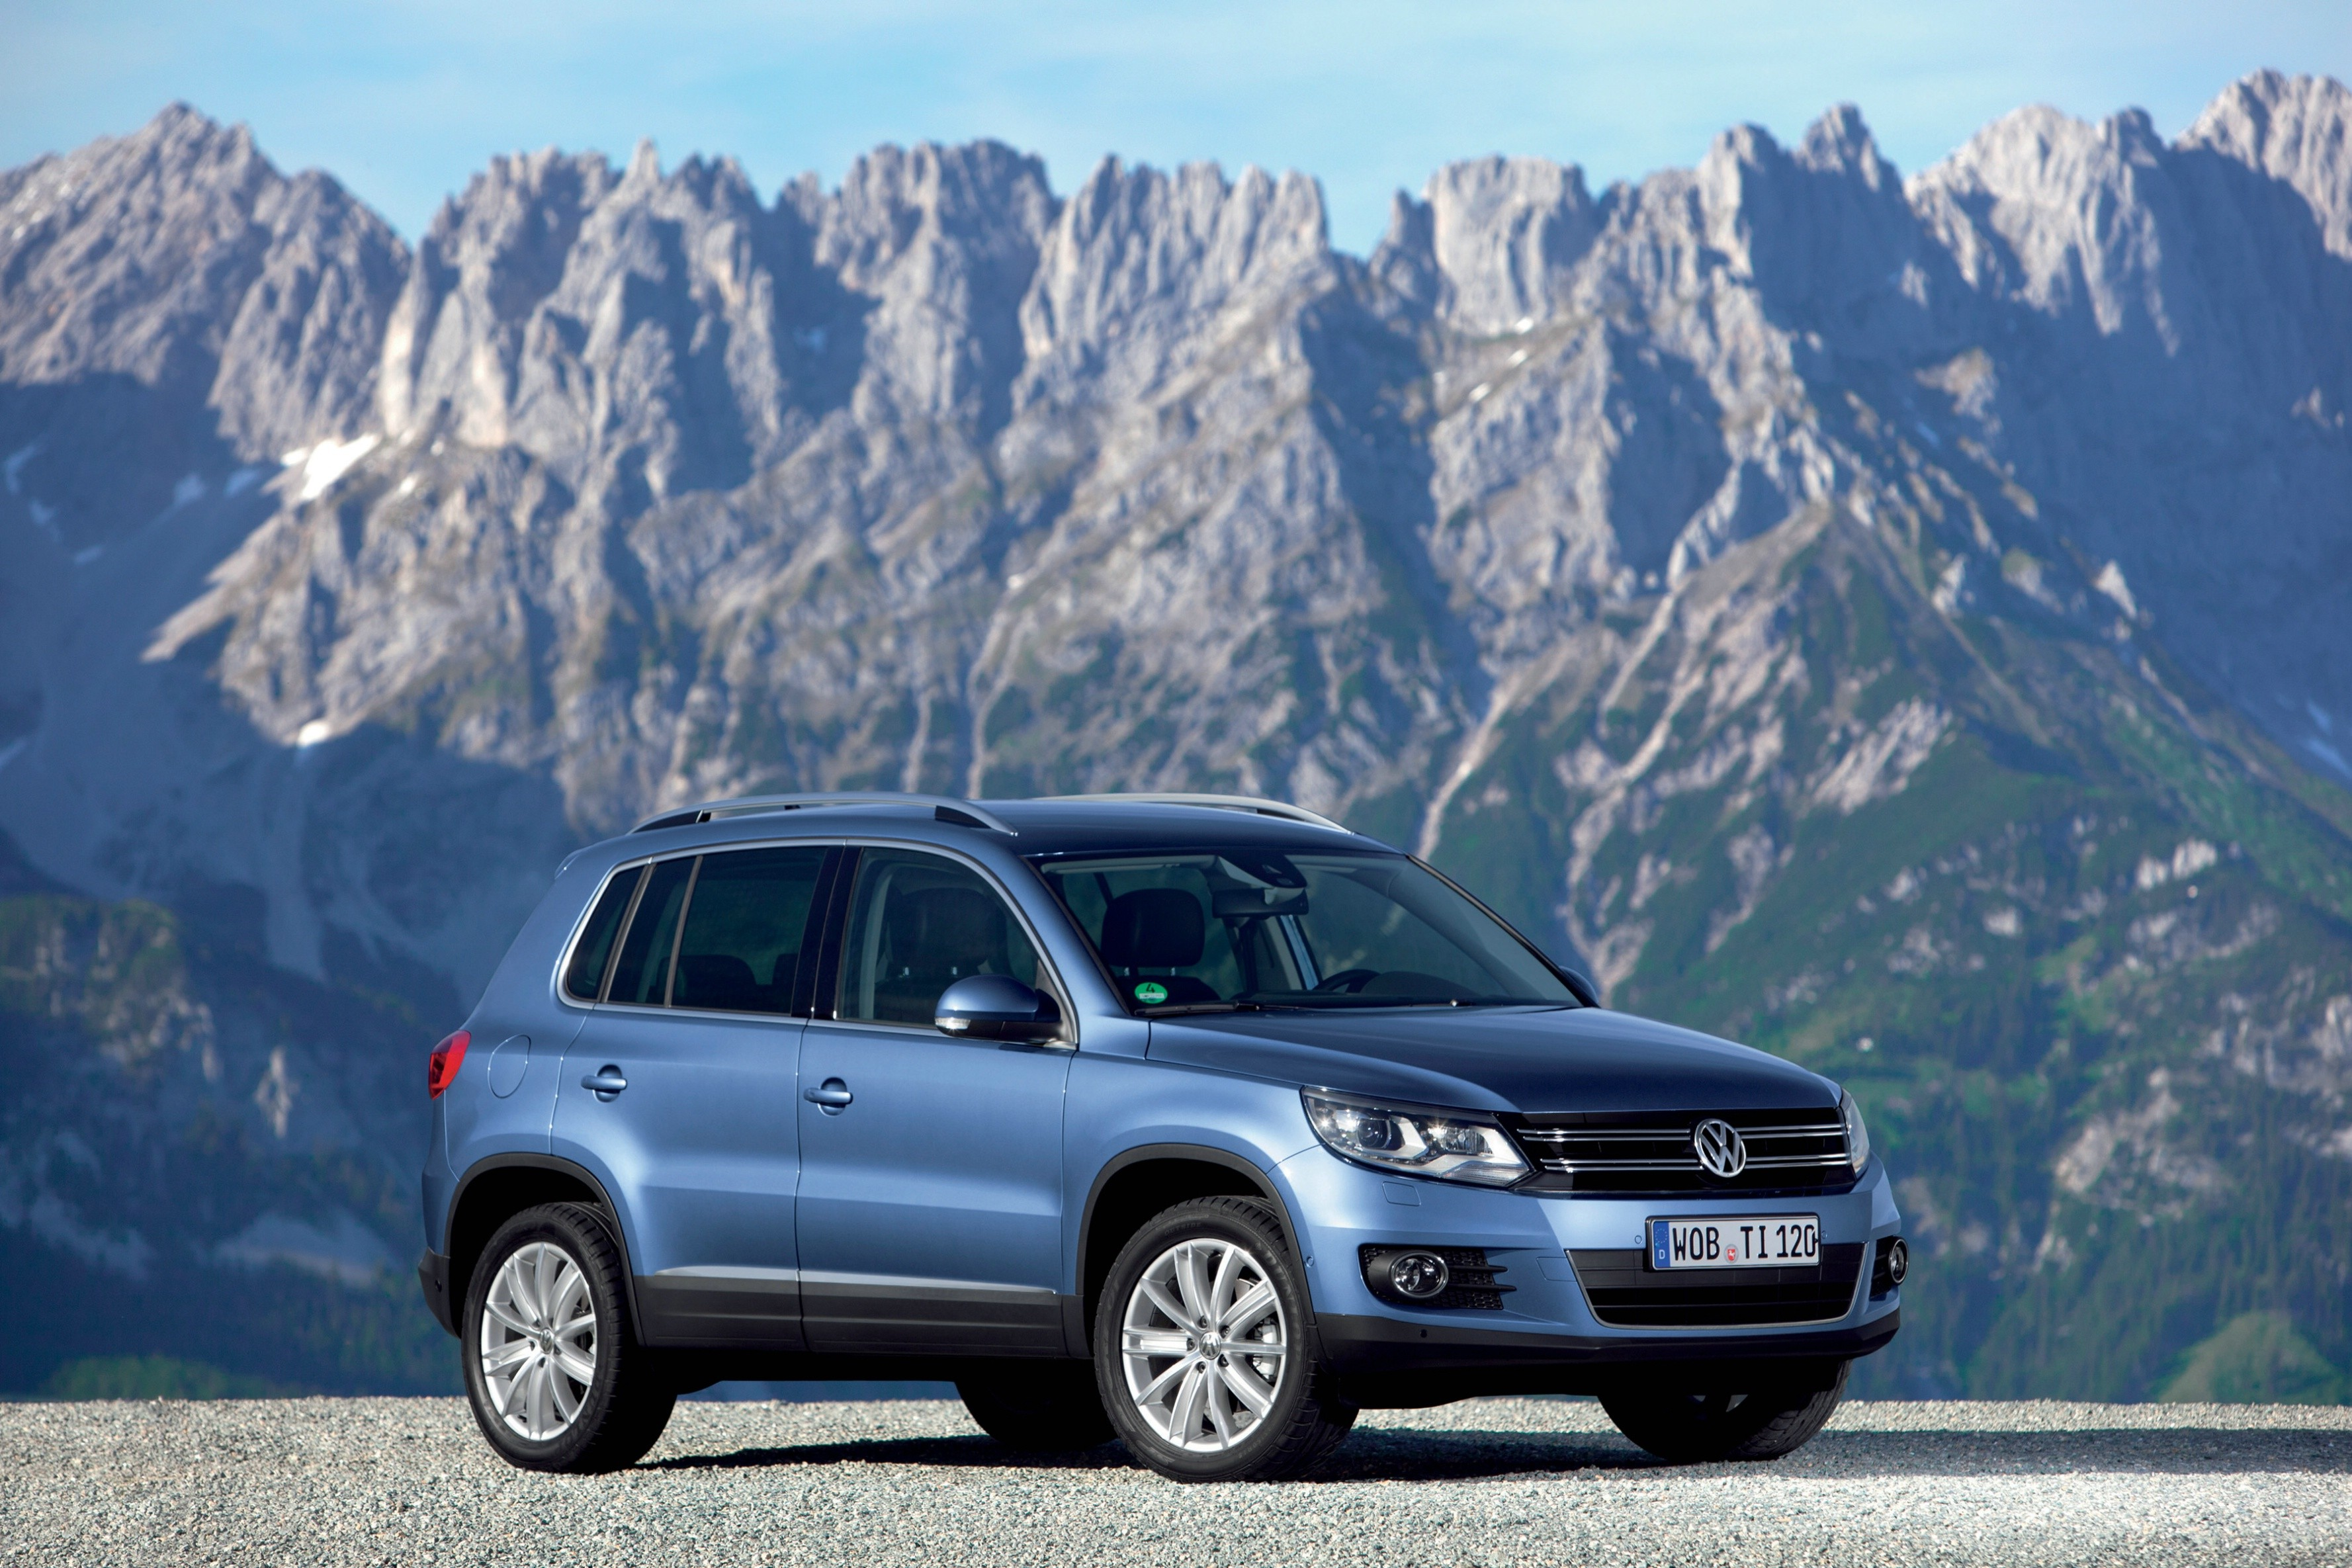 volkswagen that panoramic sunroof loved car nick feel options tiguan you palermo make new best